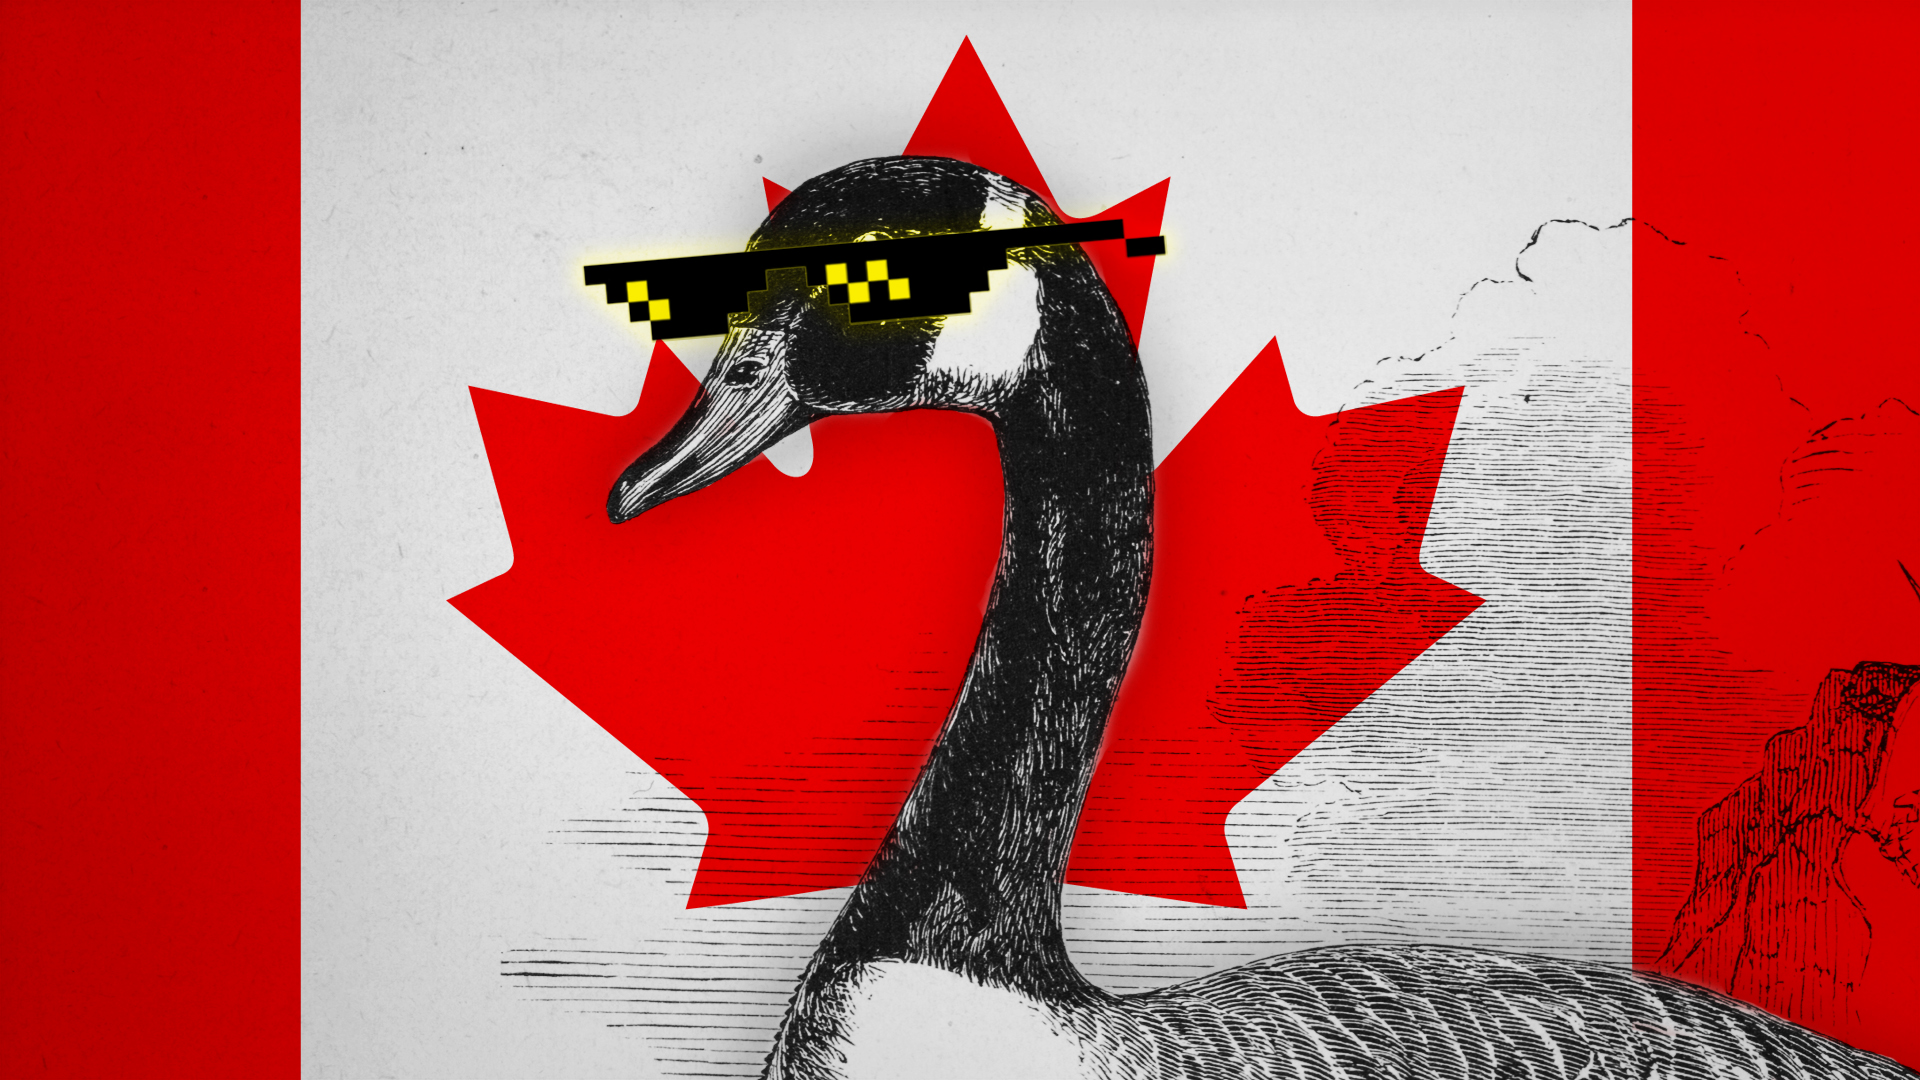 The Canada goose is unstoppable.